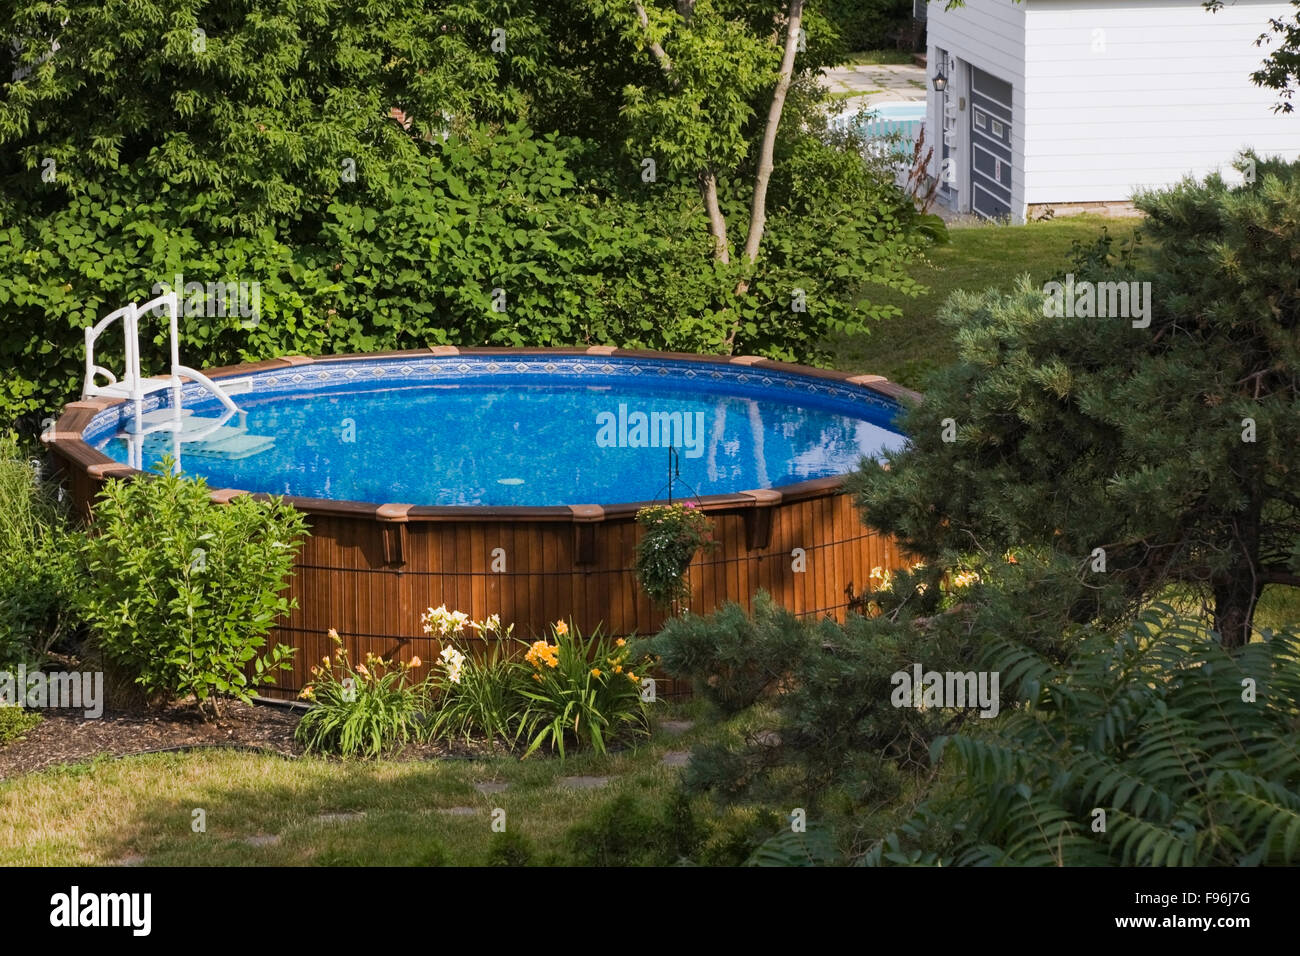 above ground cedar wood swimming pool in a residential backyard in